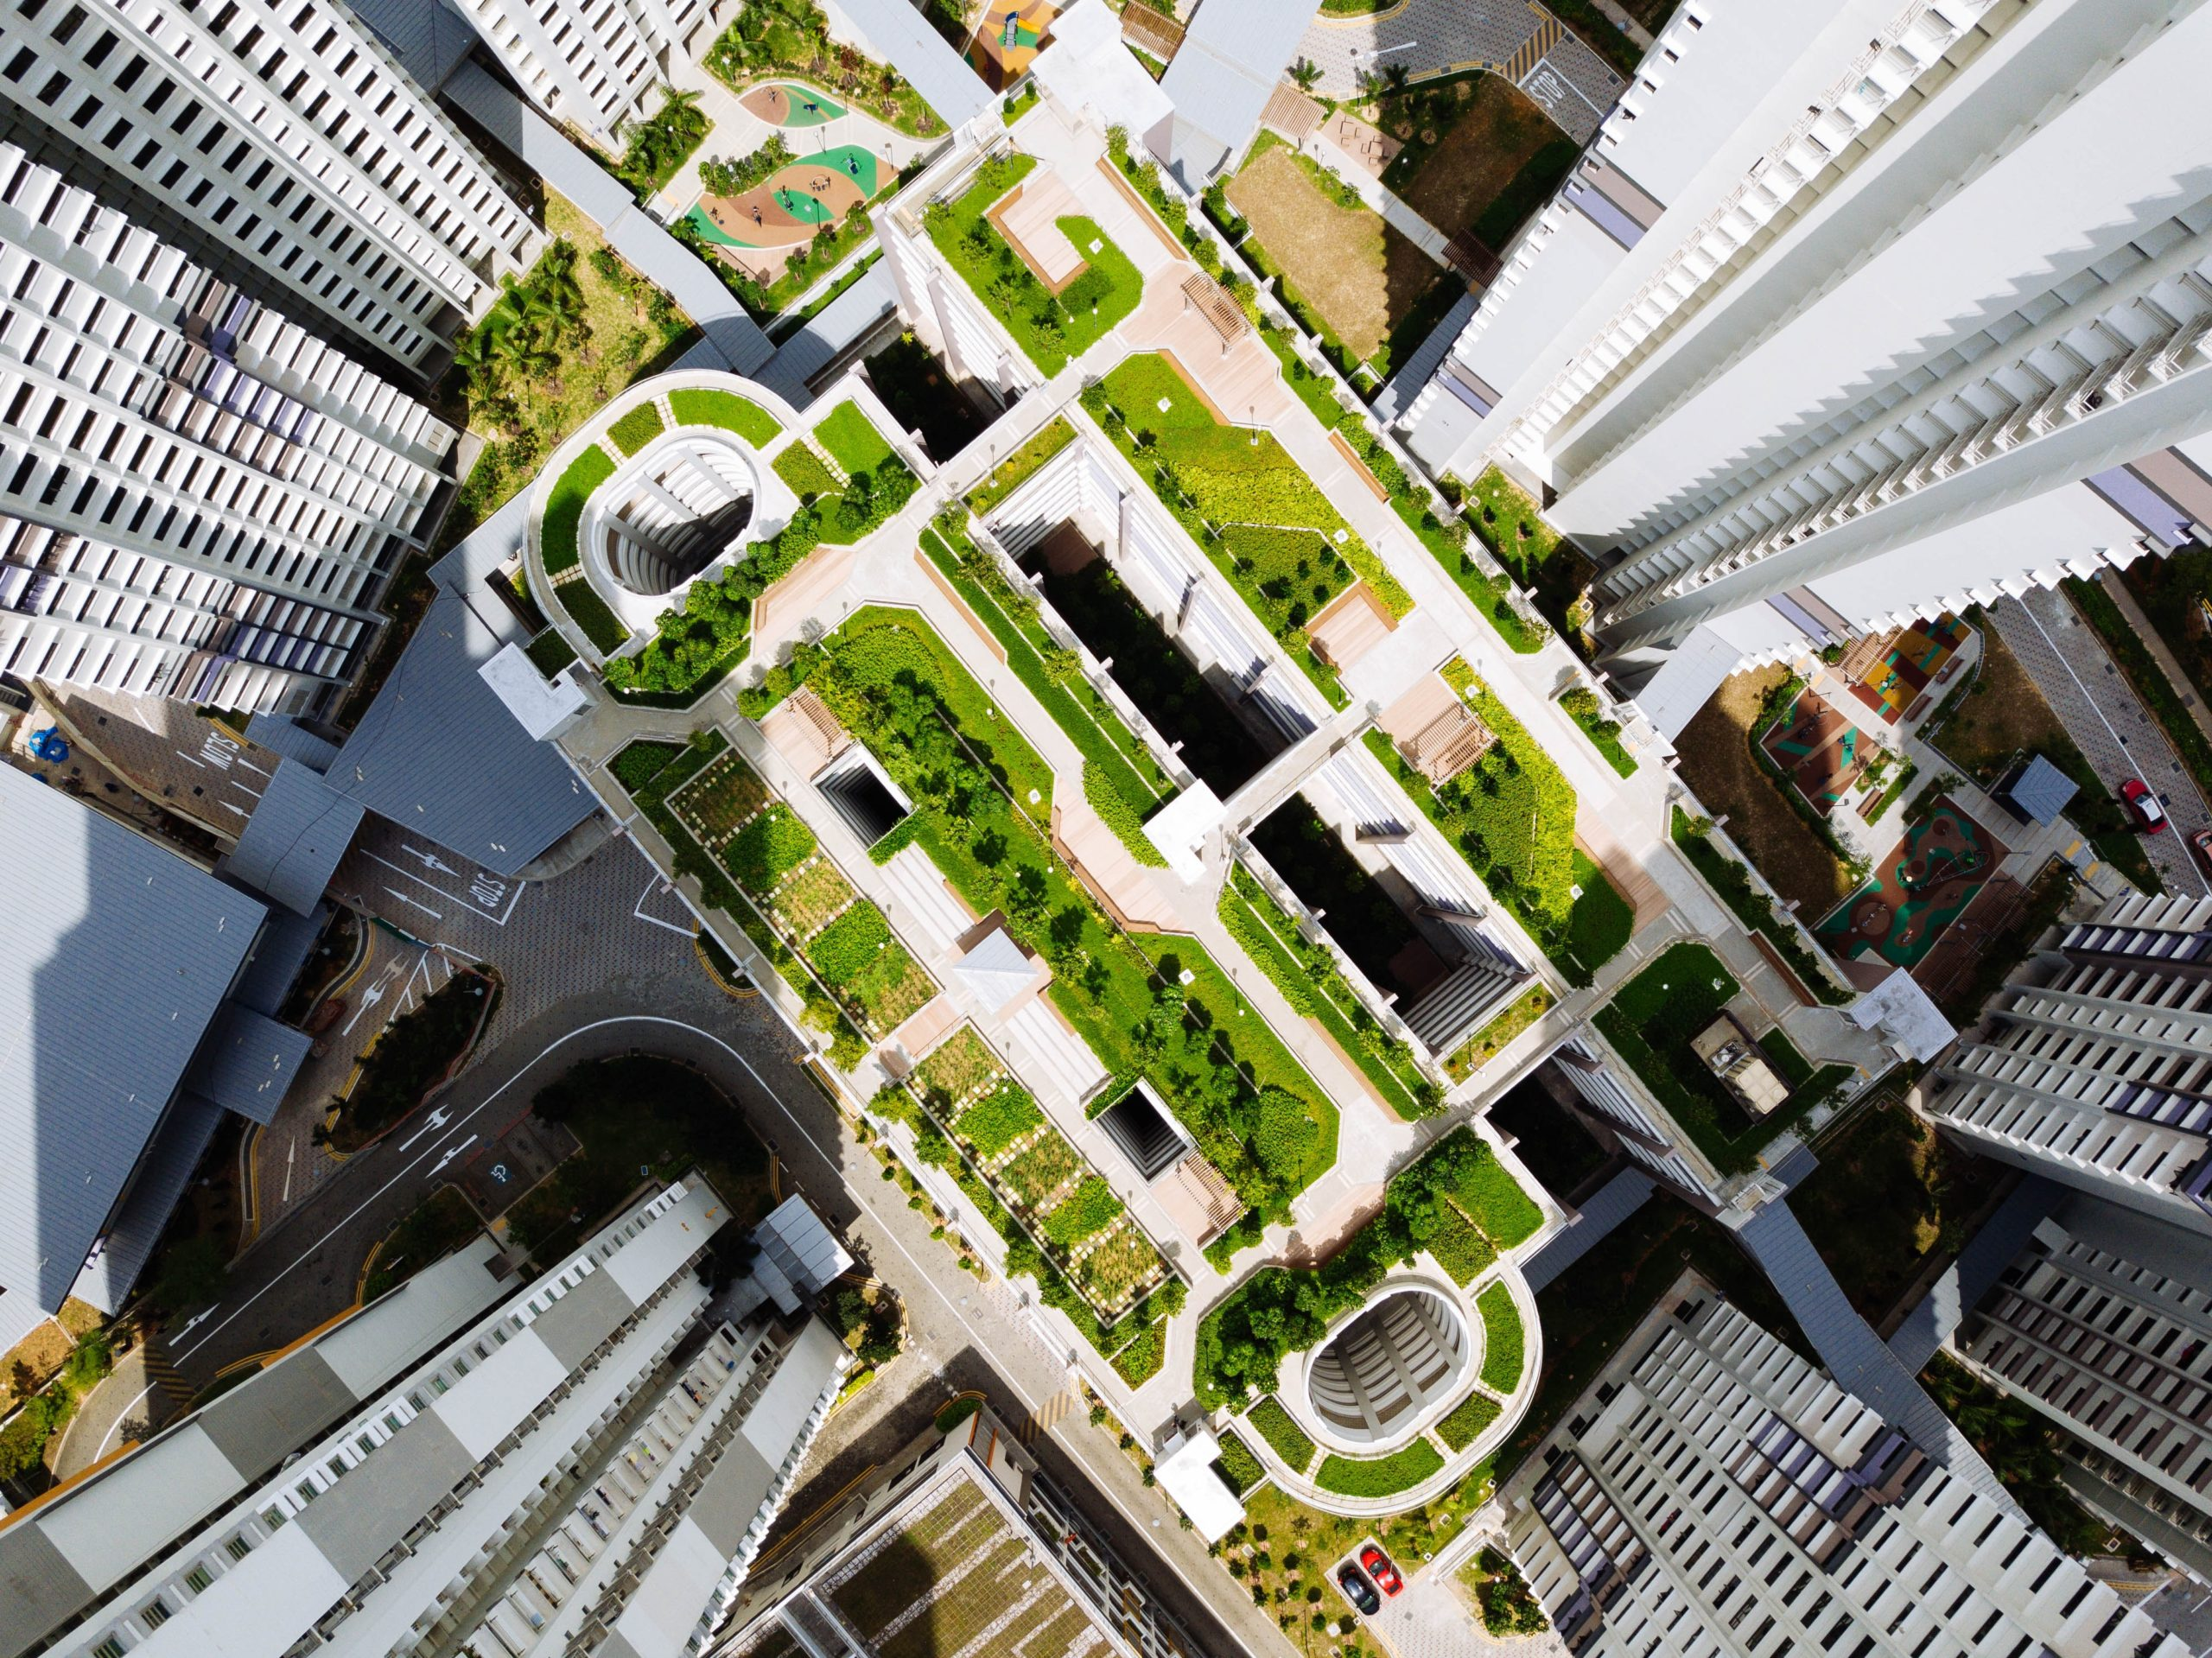 Sustainable impact investing in real estate: an investor's view - AIM